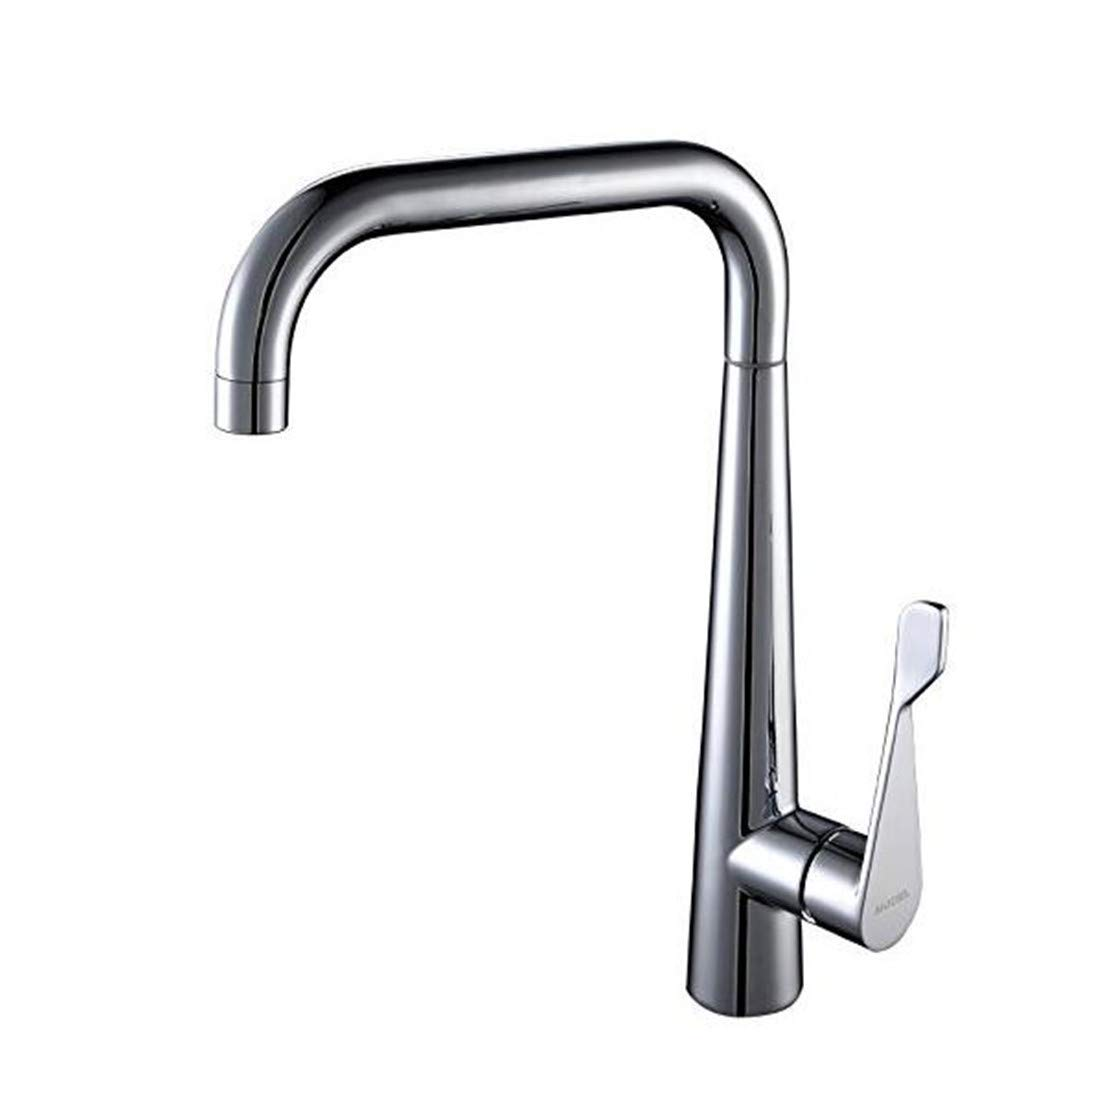 Faucet Modern Plated Mixing Faucet 360 Degree redating Cold and Hot Water Faucet All Copper Kitchen Water Faucet Copper Alloy Single Hole